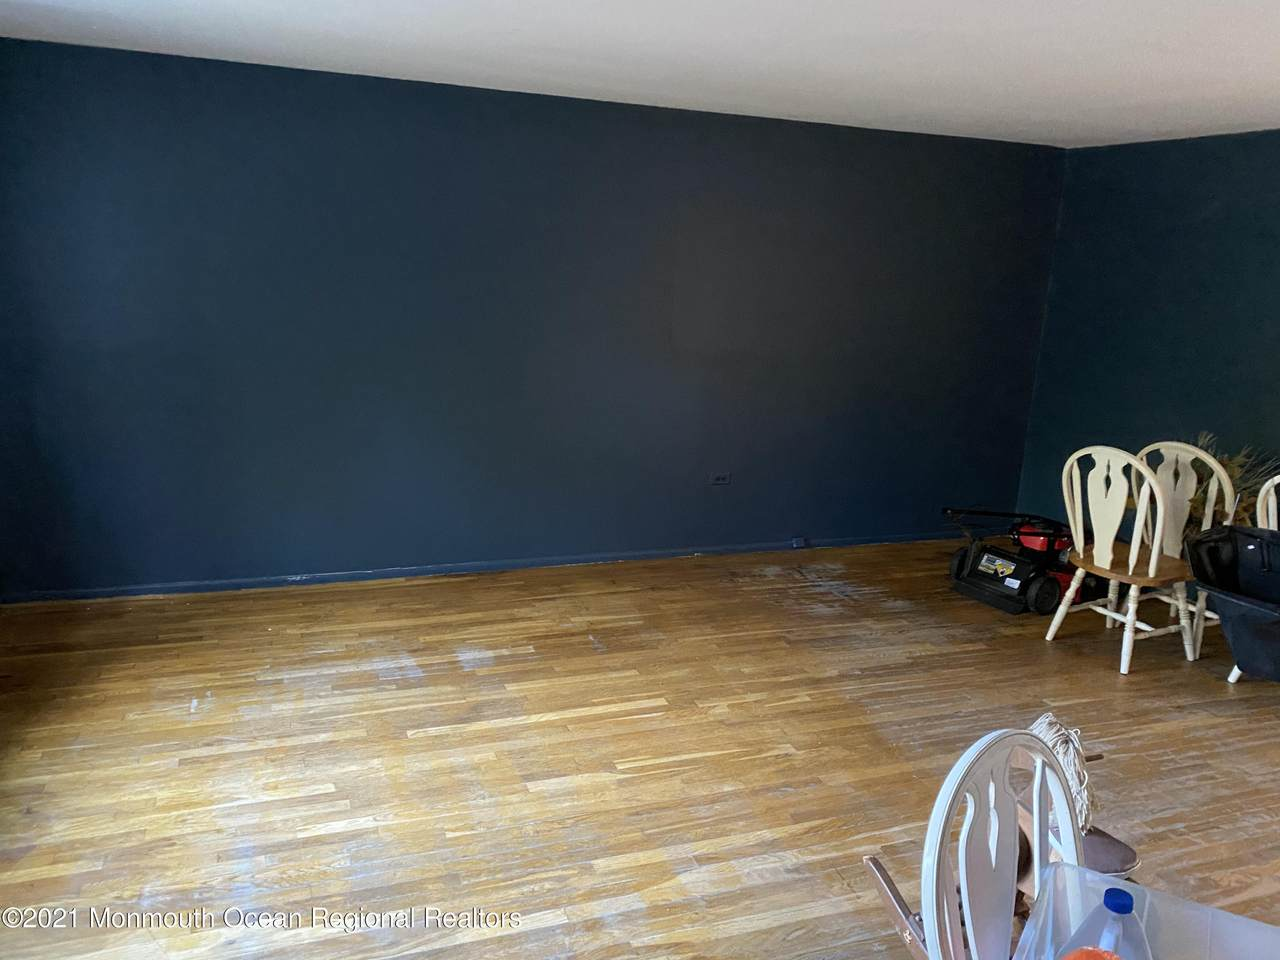 https://bt-photos.global.ssl.fastly.net/monmouth/1280_boomver_1_22107641-2.jpg